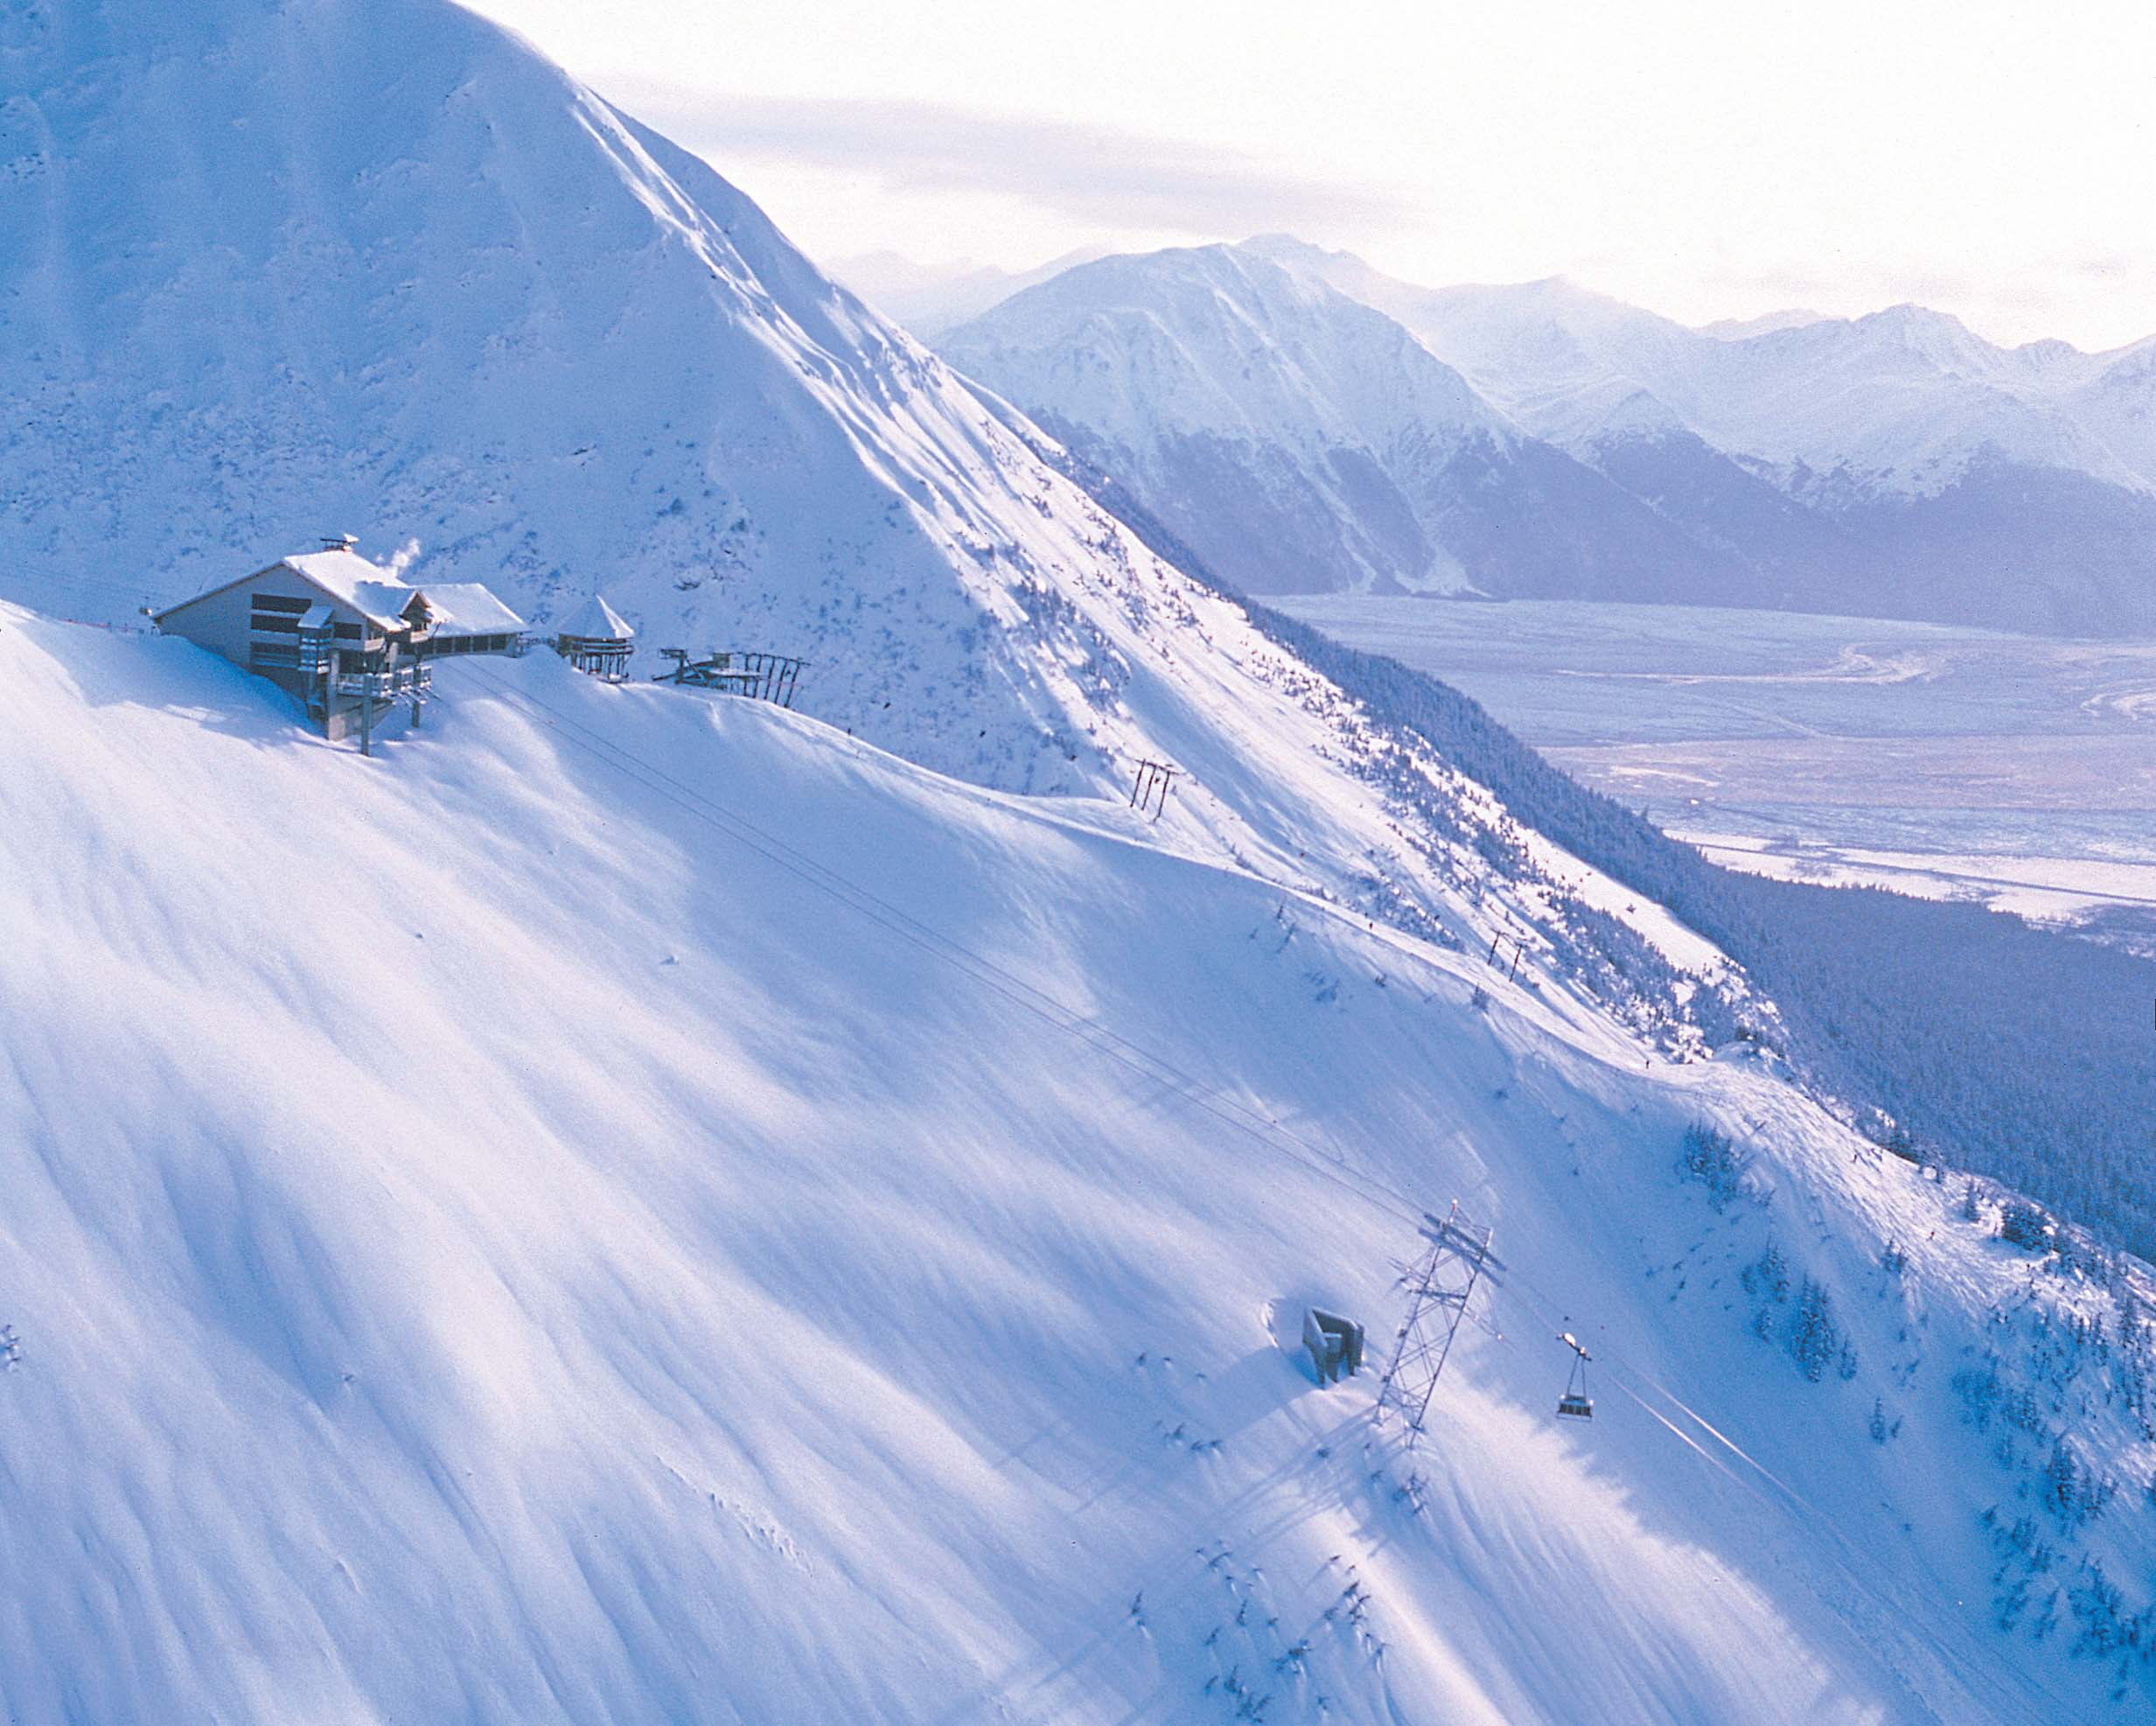 World-class In-room WiFi Access - Alyeska Resort is the largest ski area in Alaska, well-known for its steep terrain and deep snowpack. When guests complained about WiFi service availability and performance, the hotel sought a solution that would deliver the stellar level of service for which they are famous.